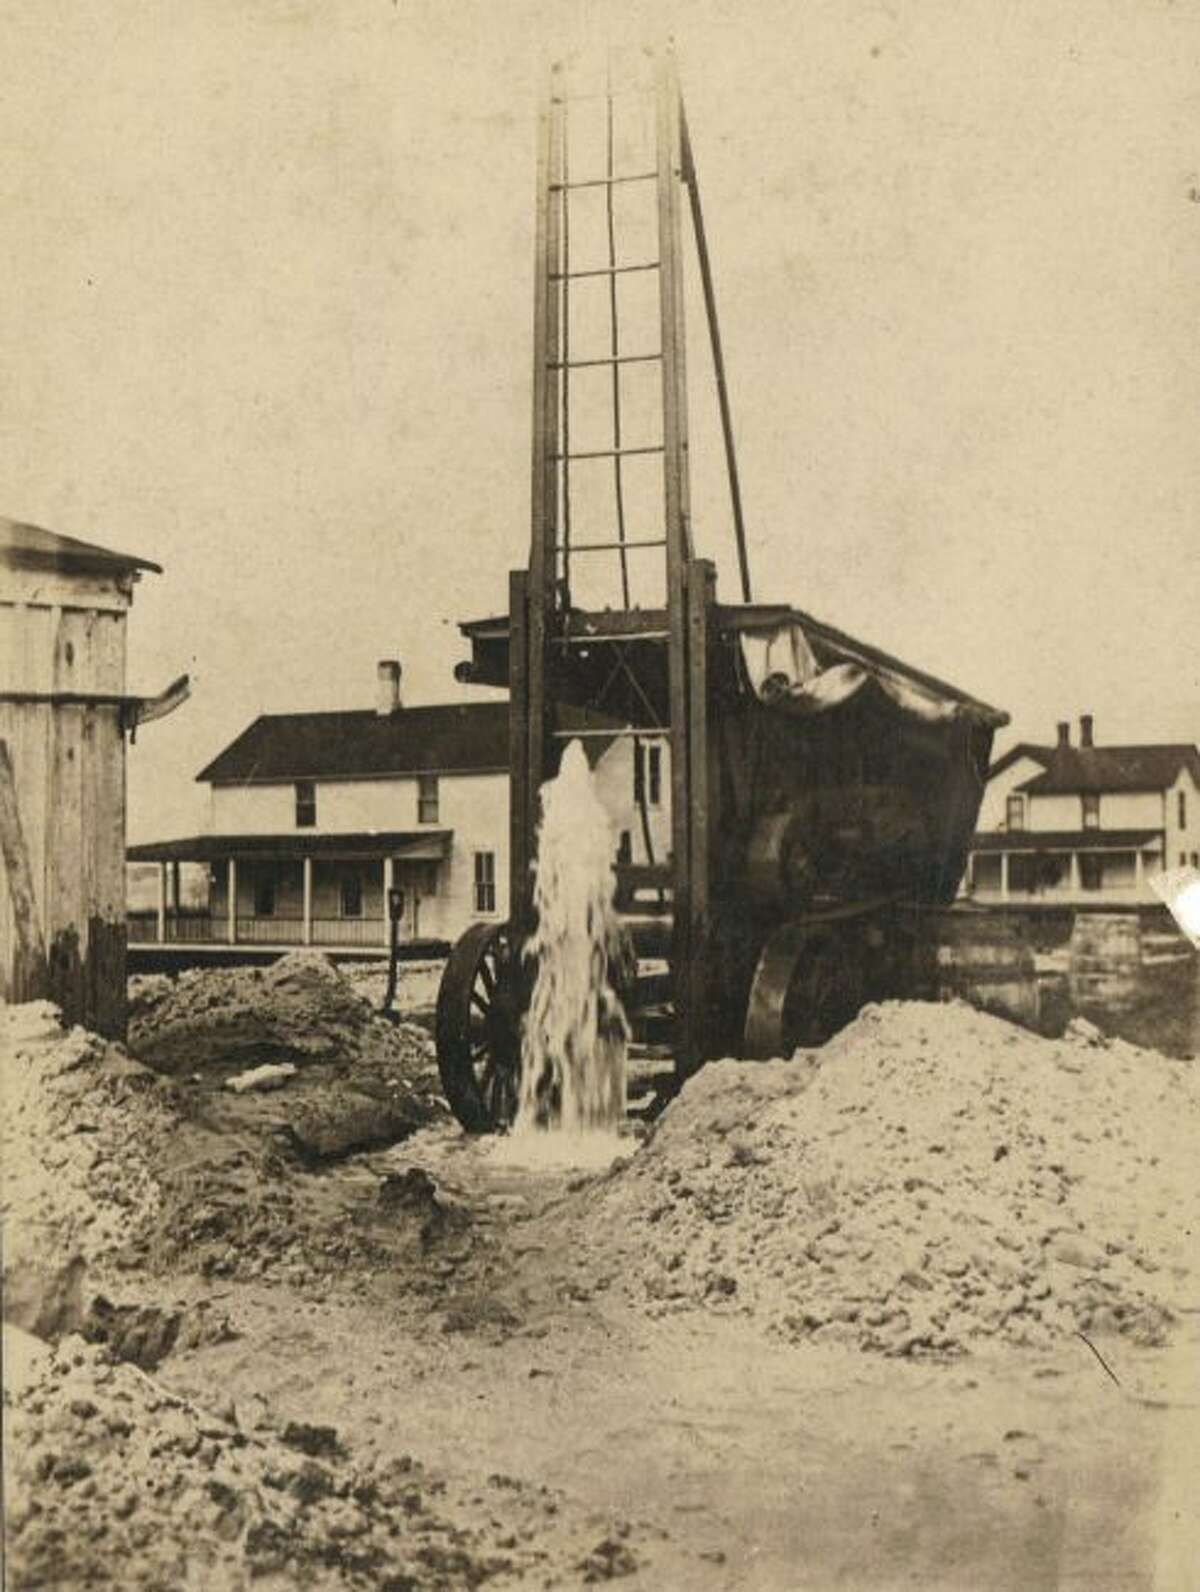 An artesian well in Onekama is shown bubbling up to the surface in the early 1900s.